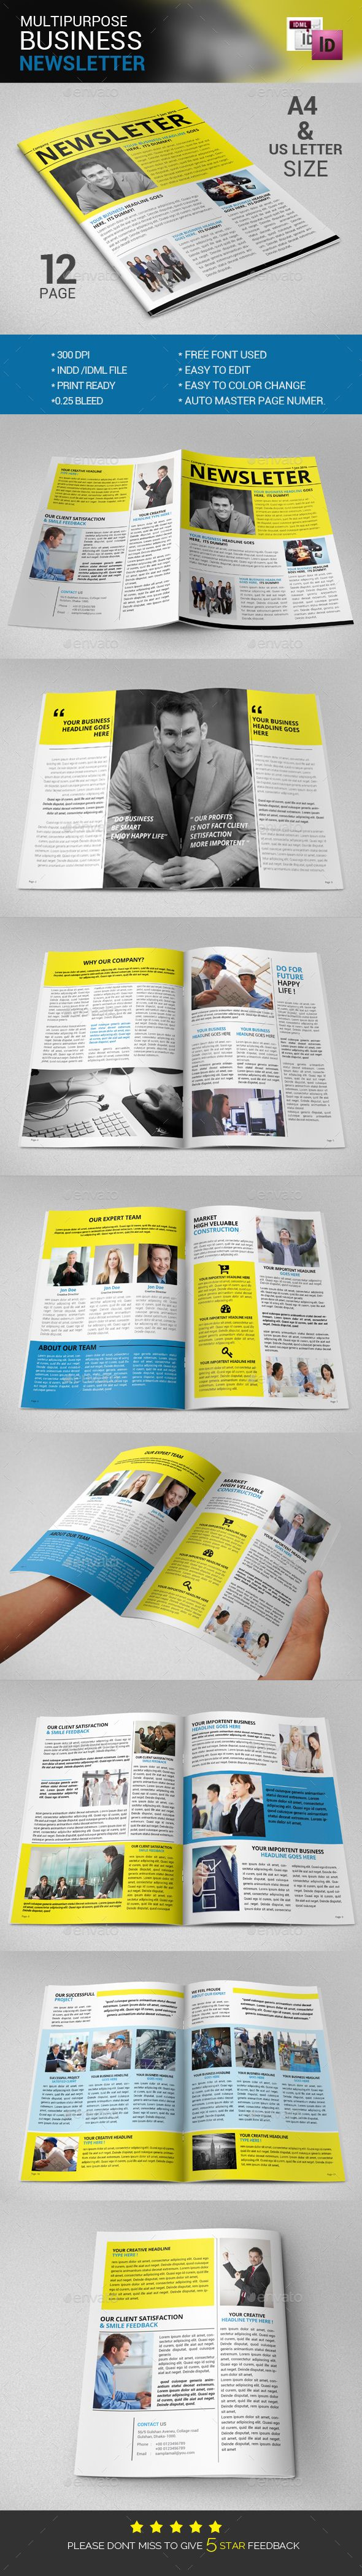 The Best Newsletter Print Templates Files Images On Pinterest - Print newsletter templates